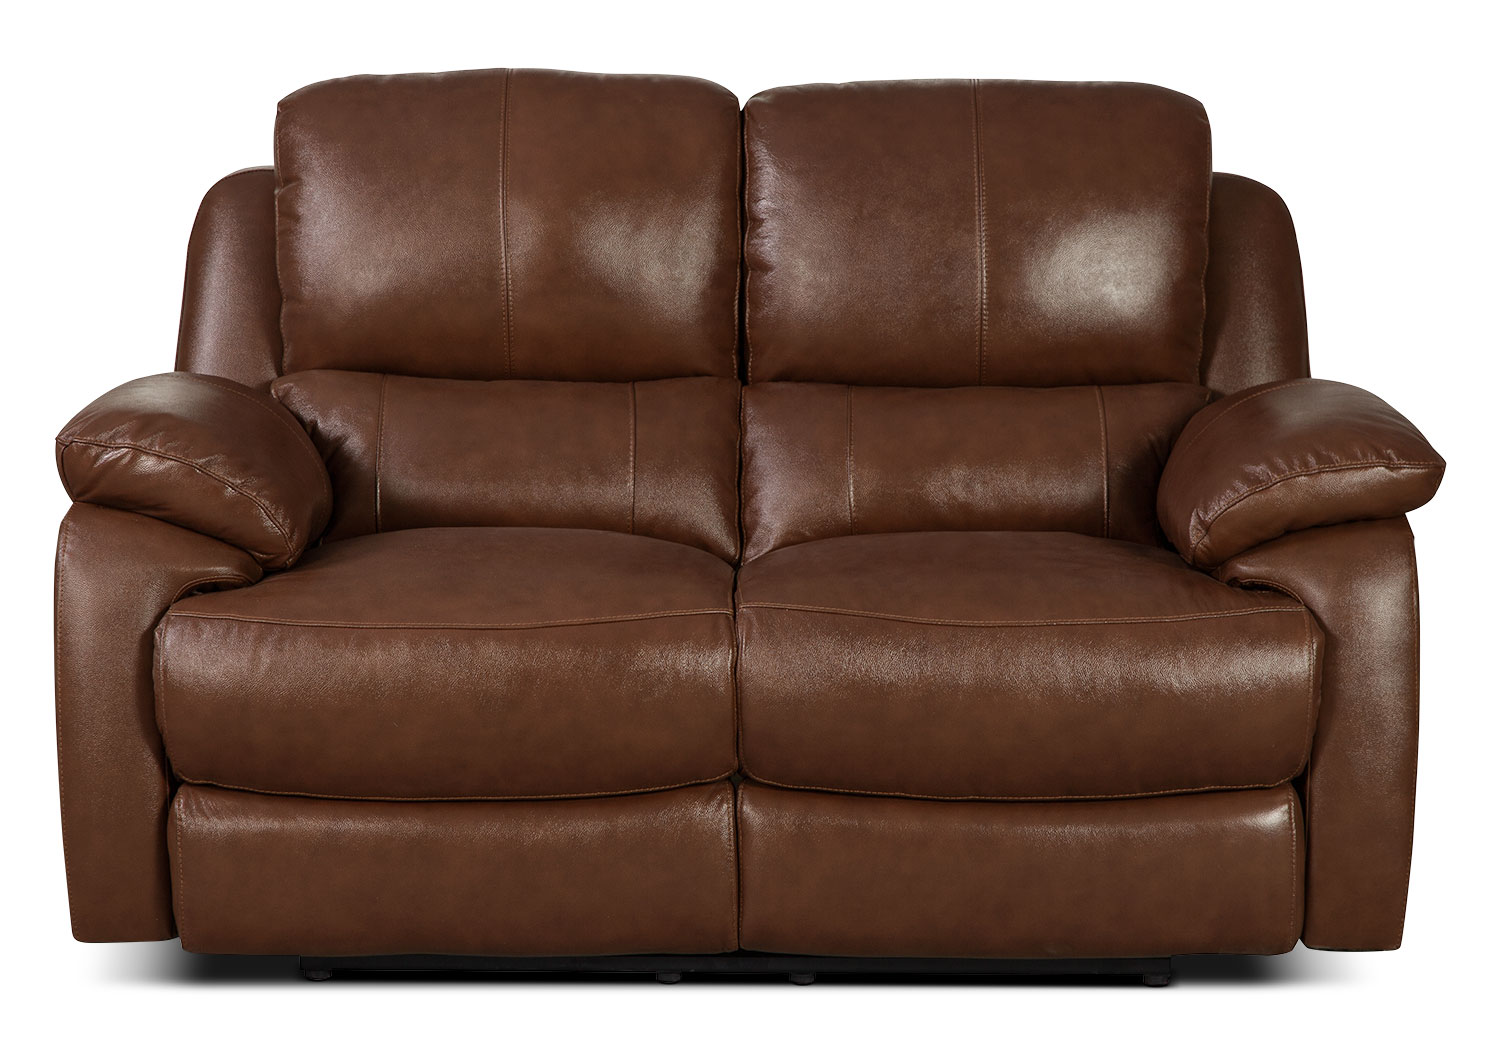 Cairo Genuine Leather Power Reclining Loveseat – Brown